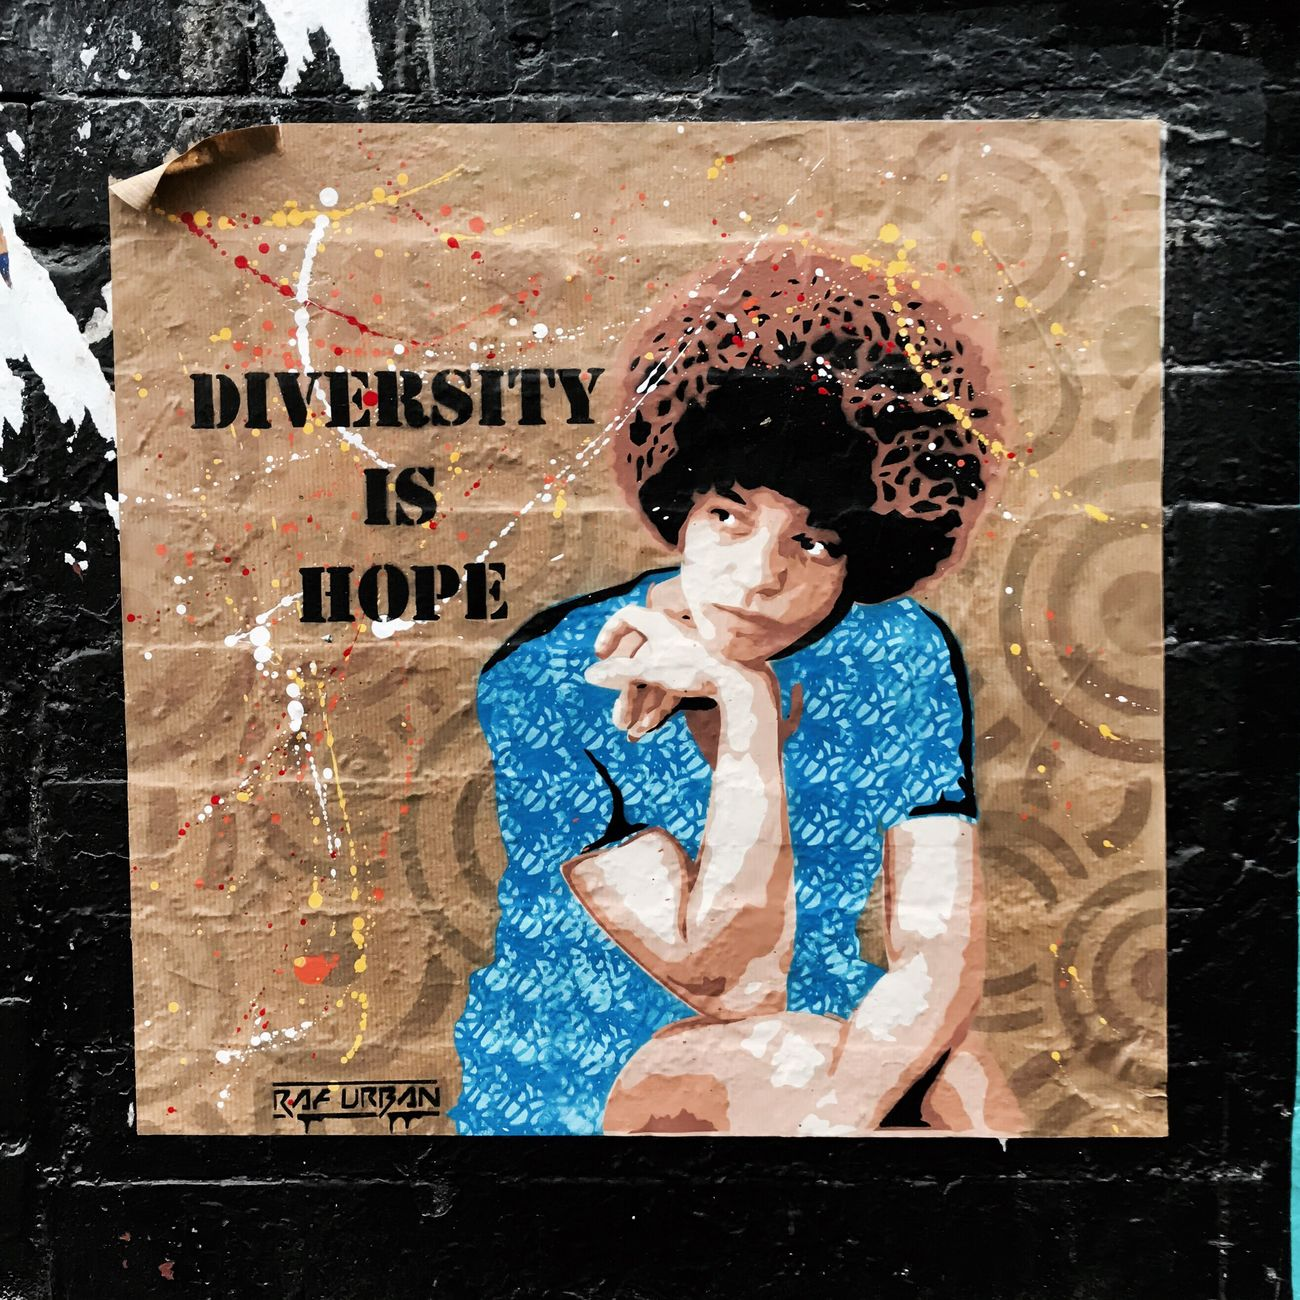 #diversity #hope #positive #change #timyoungiphoneography